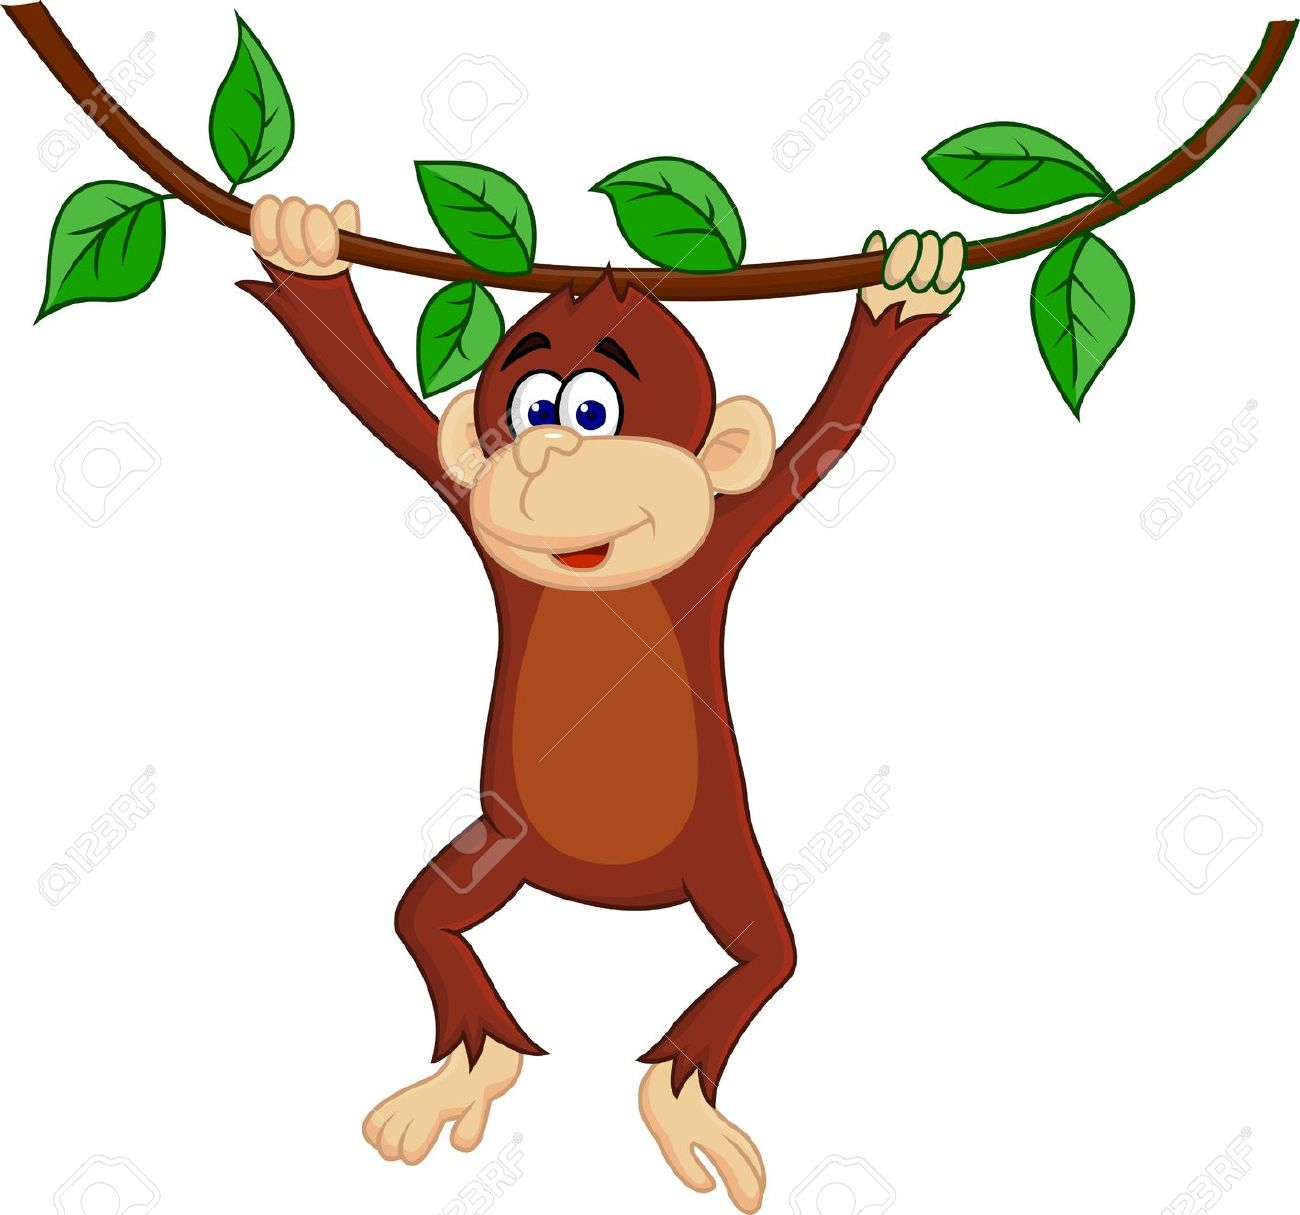 Clipart of a monkey hanging from a tree image library Monkey In A Tree Clipart | Free download best Monkey In A Tree ... image library